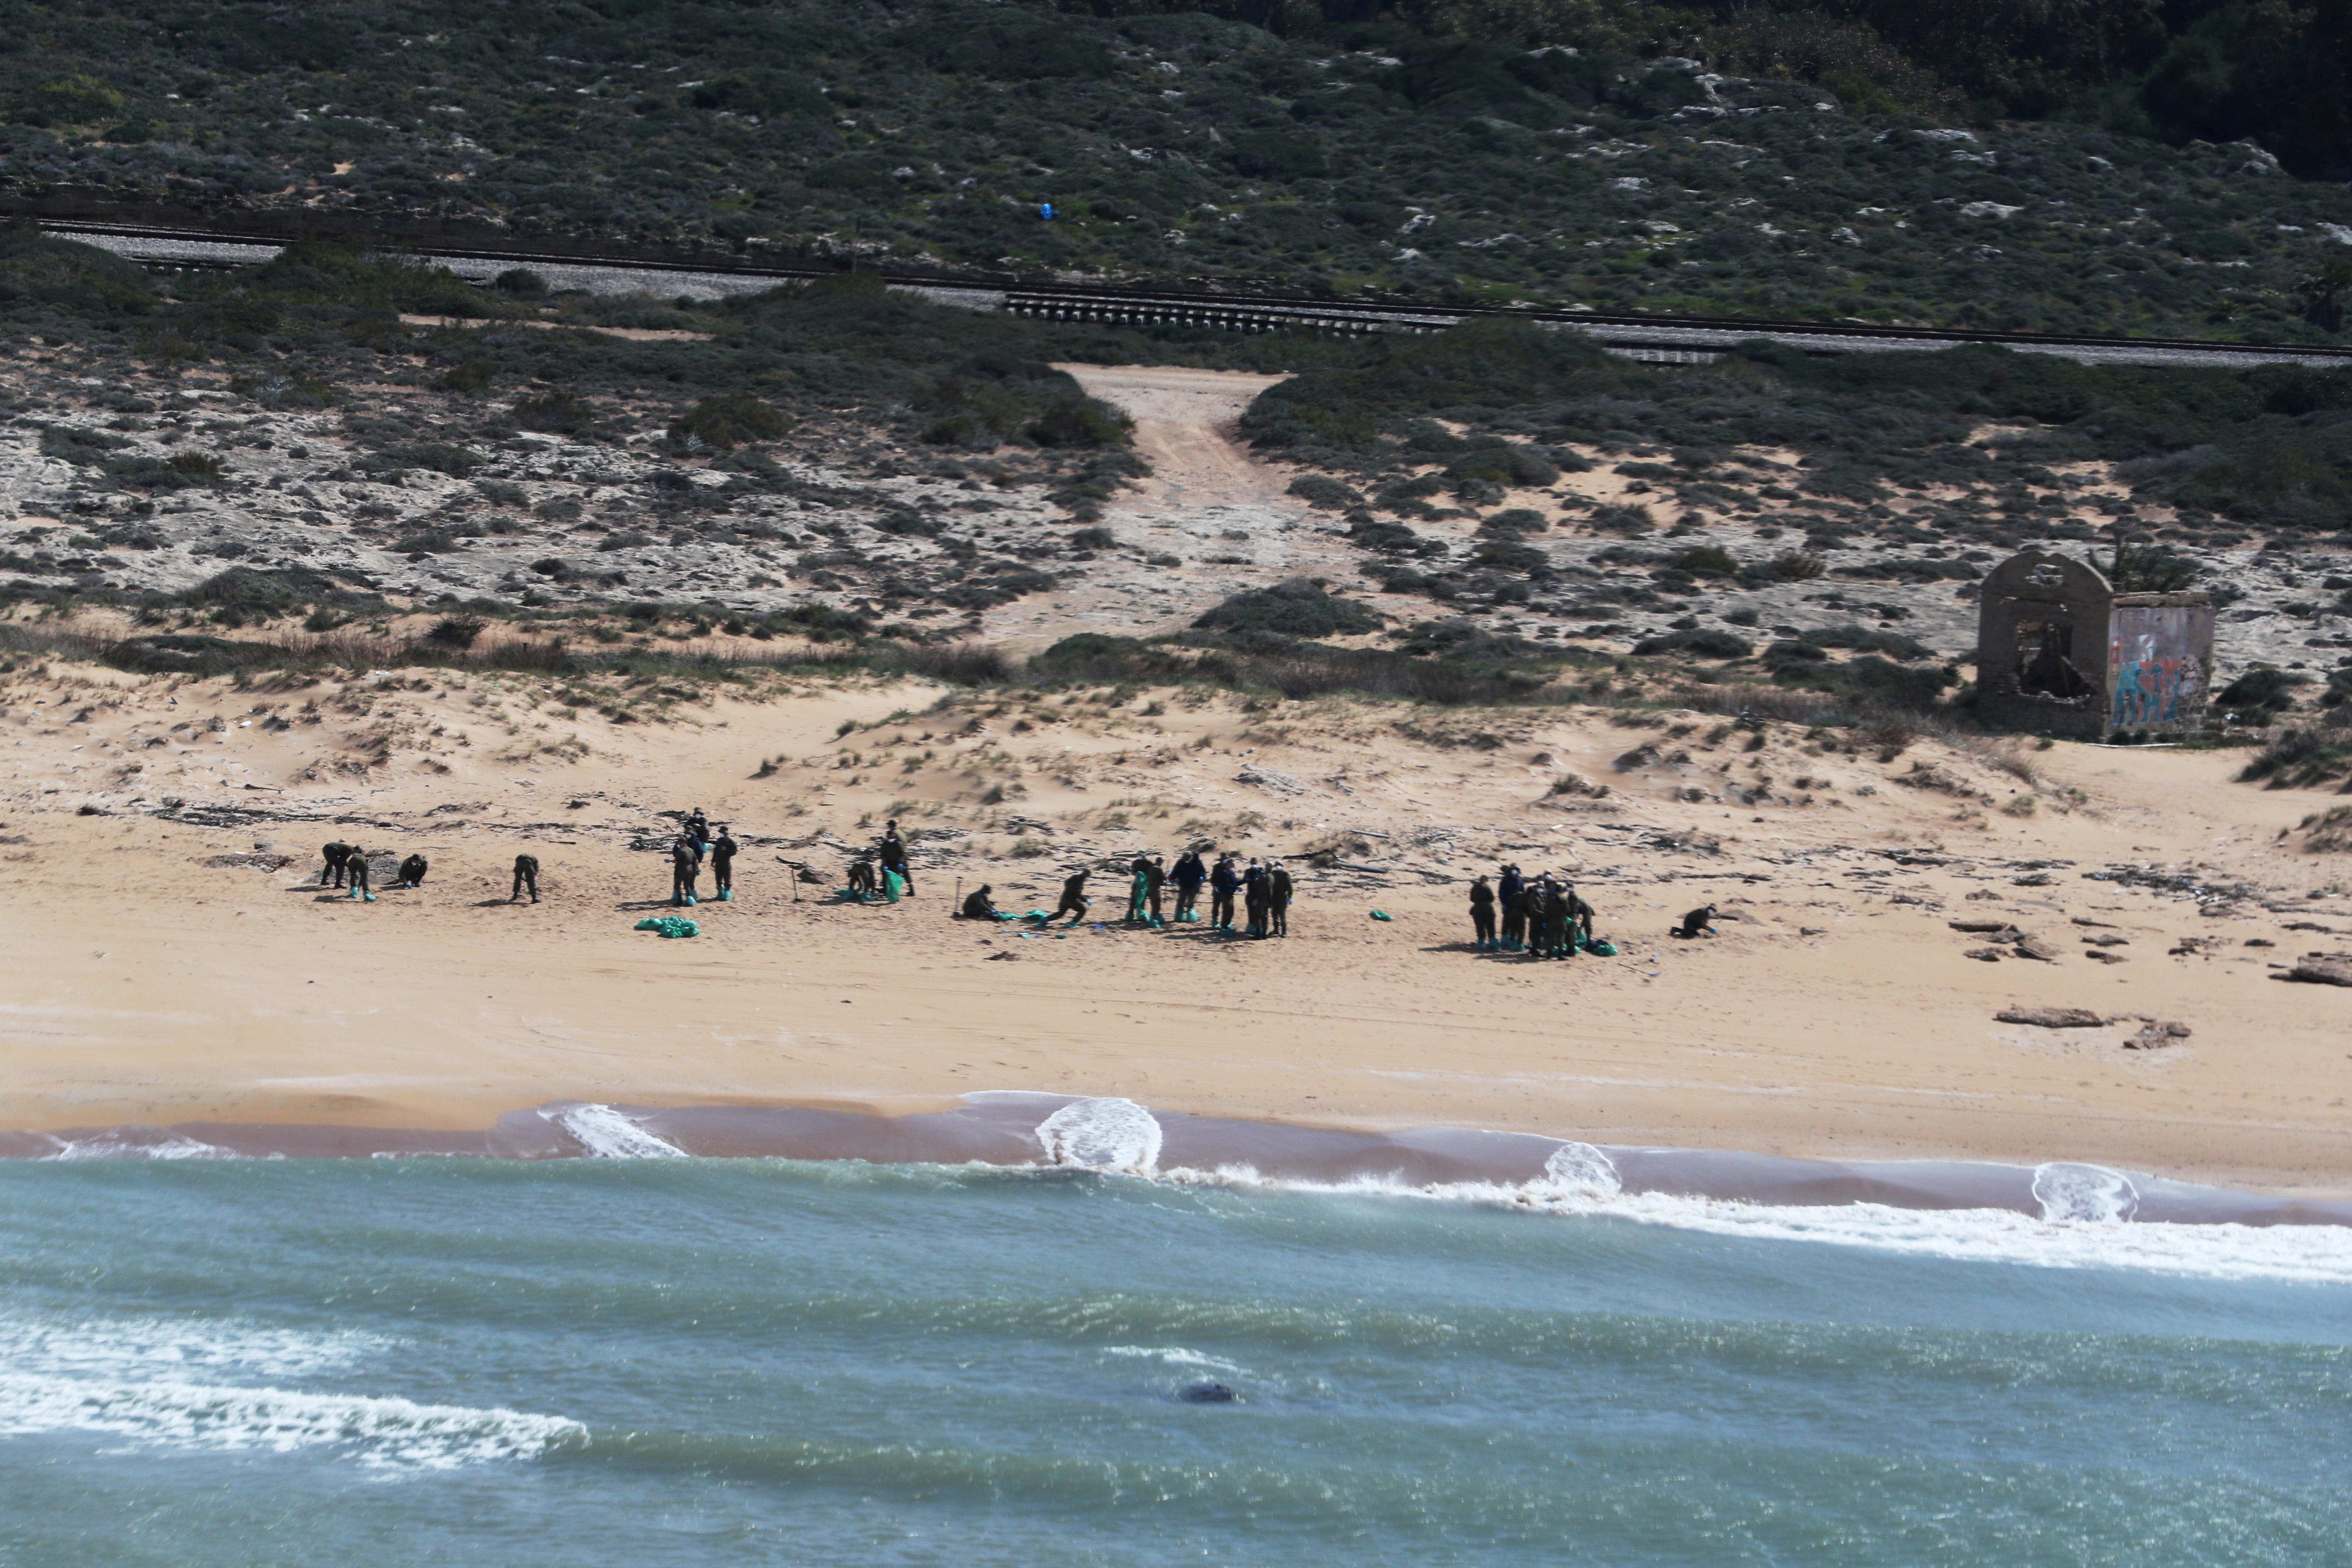 An aerial view shows Israeli soldiers cleaning tar from the sand after an offshore oil spill drenched much of Israel